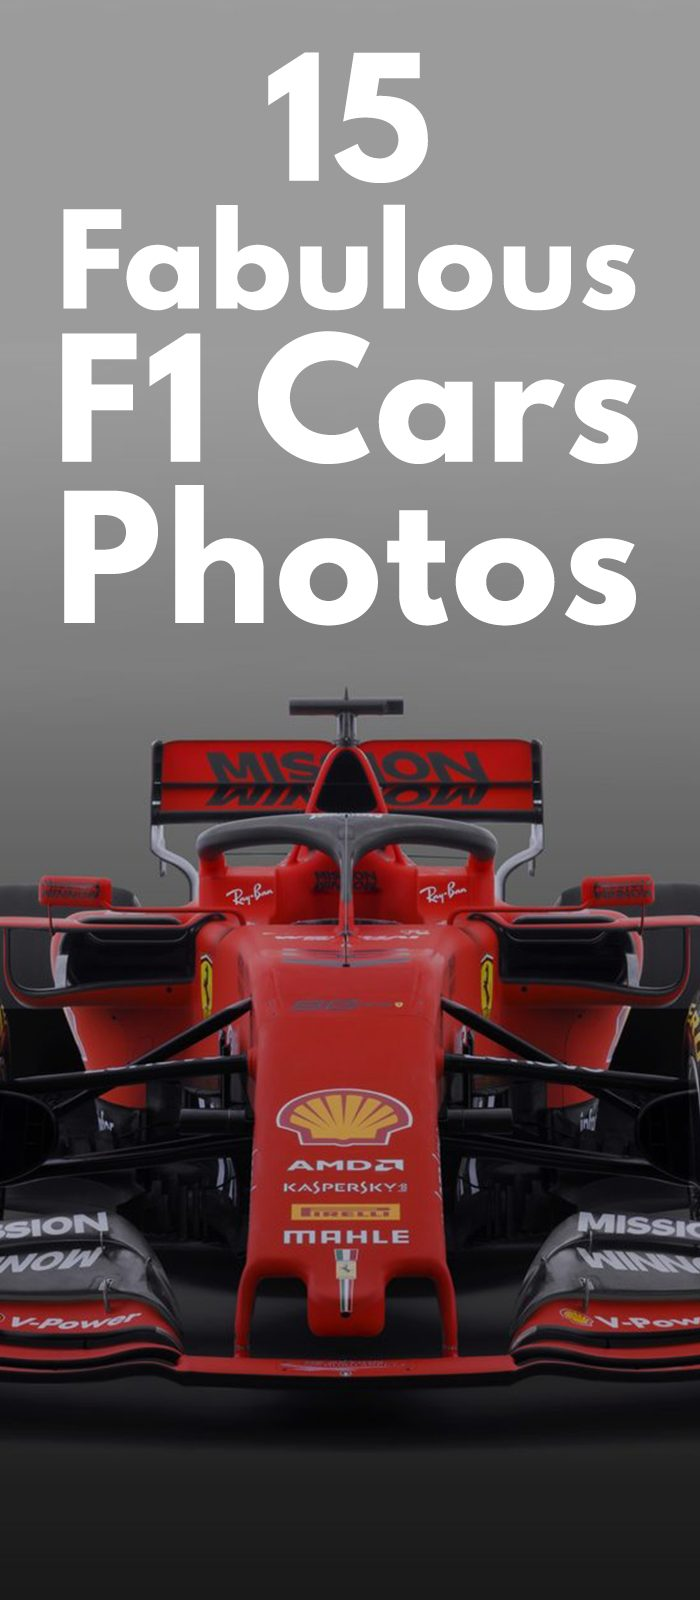 15 Fabulous F1 Cars Photos.